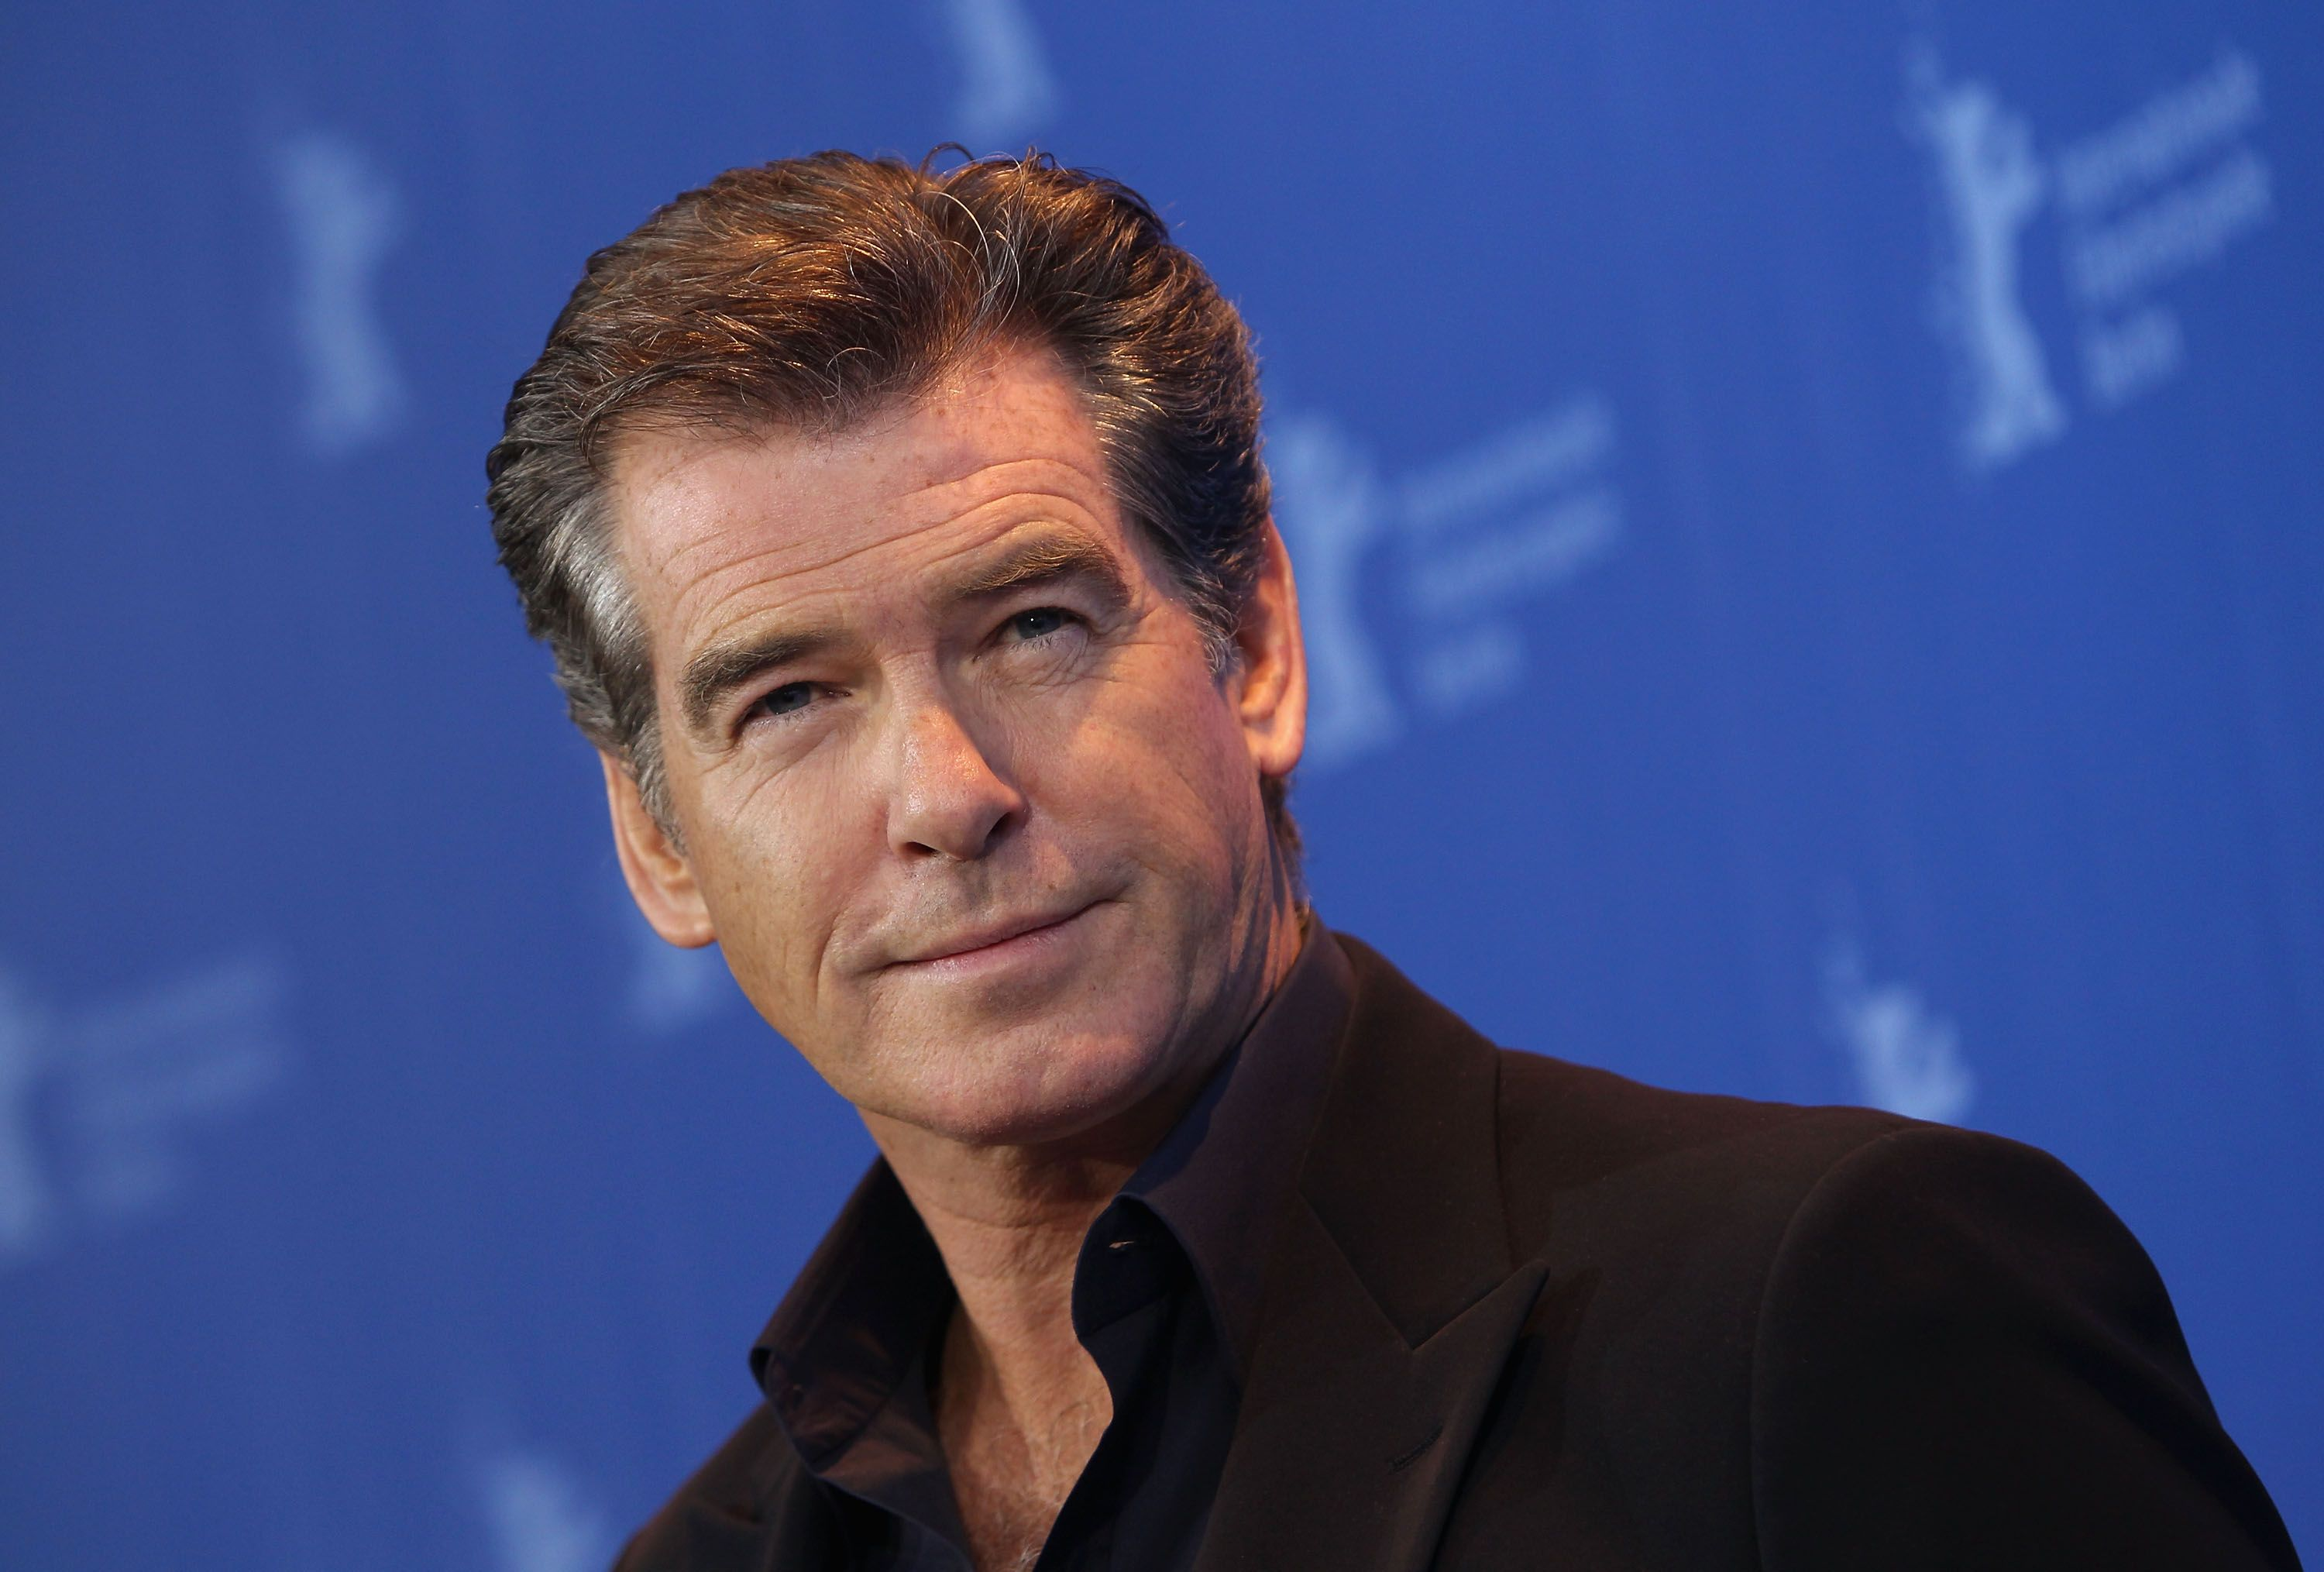 Pierce Brosnan at the 60th Berlin International Film Festival in 2010 | Source: Getty Images